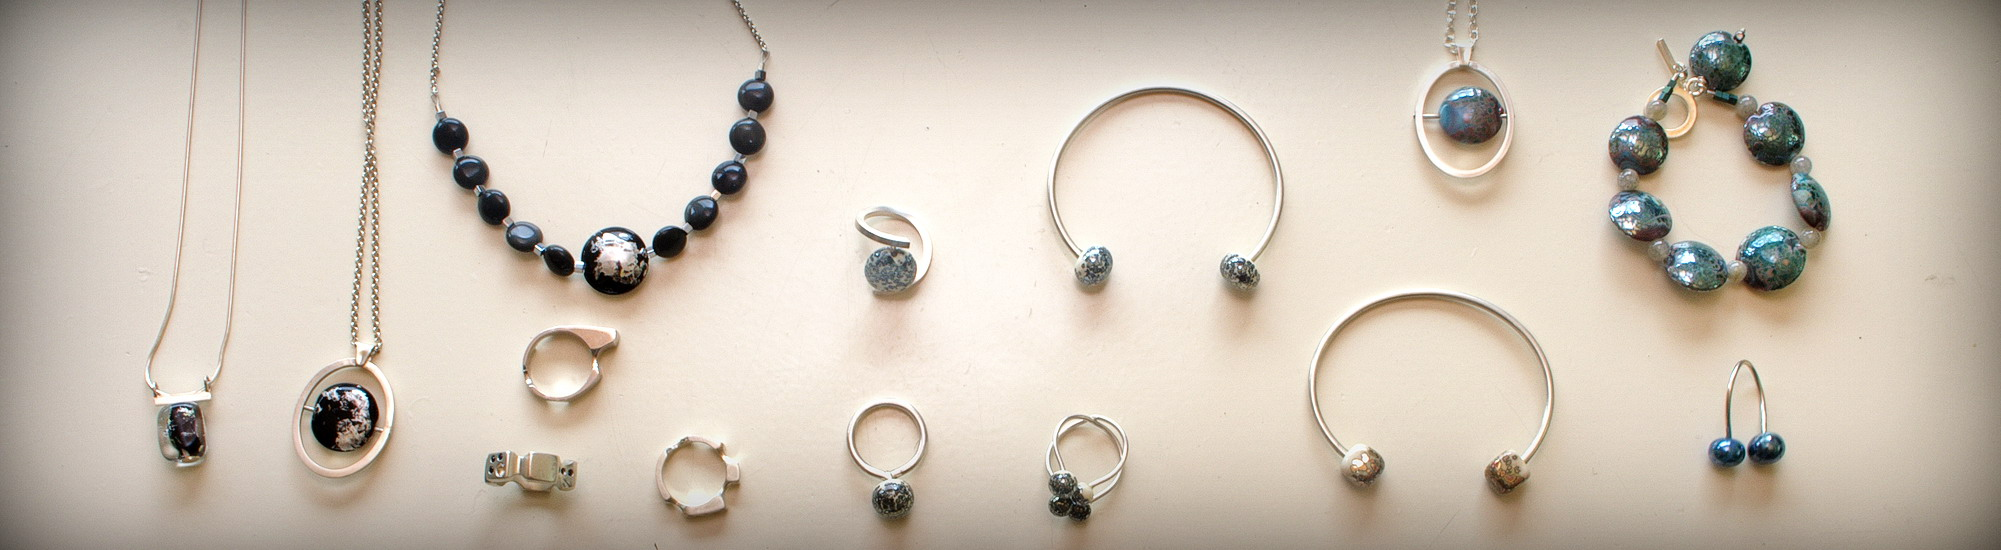 VIV'S Goldsmithing and lampwork combined